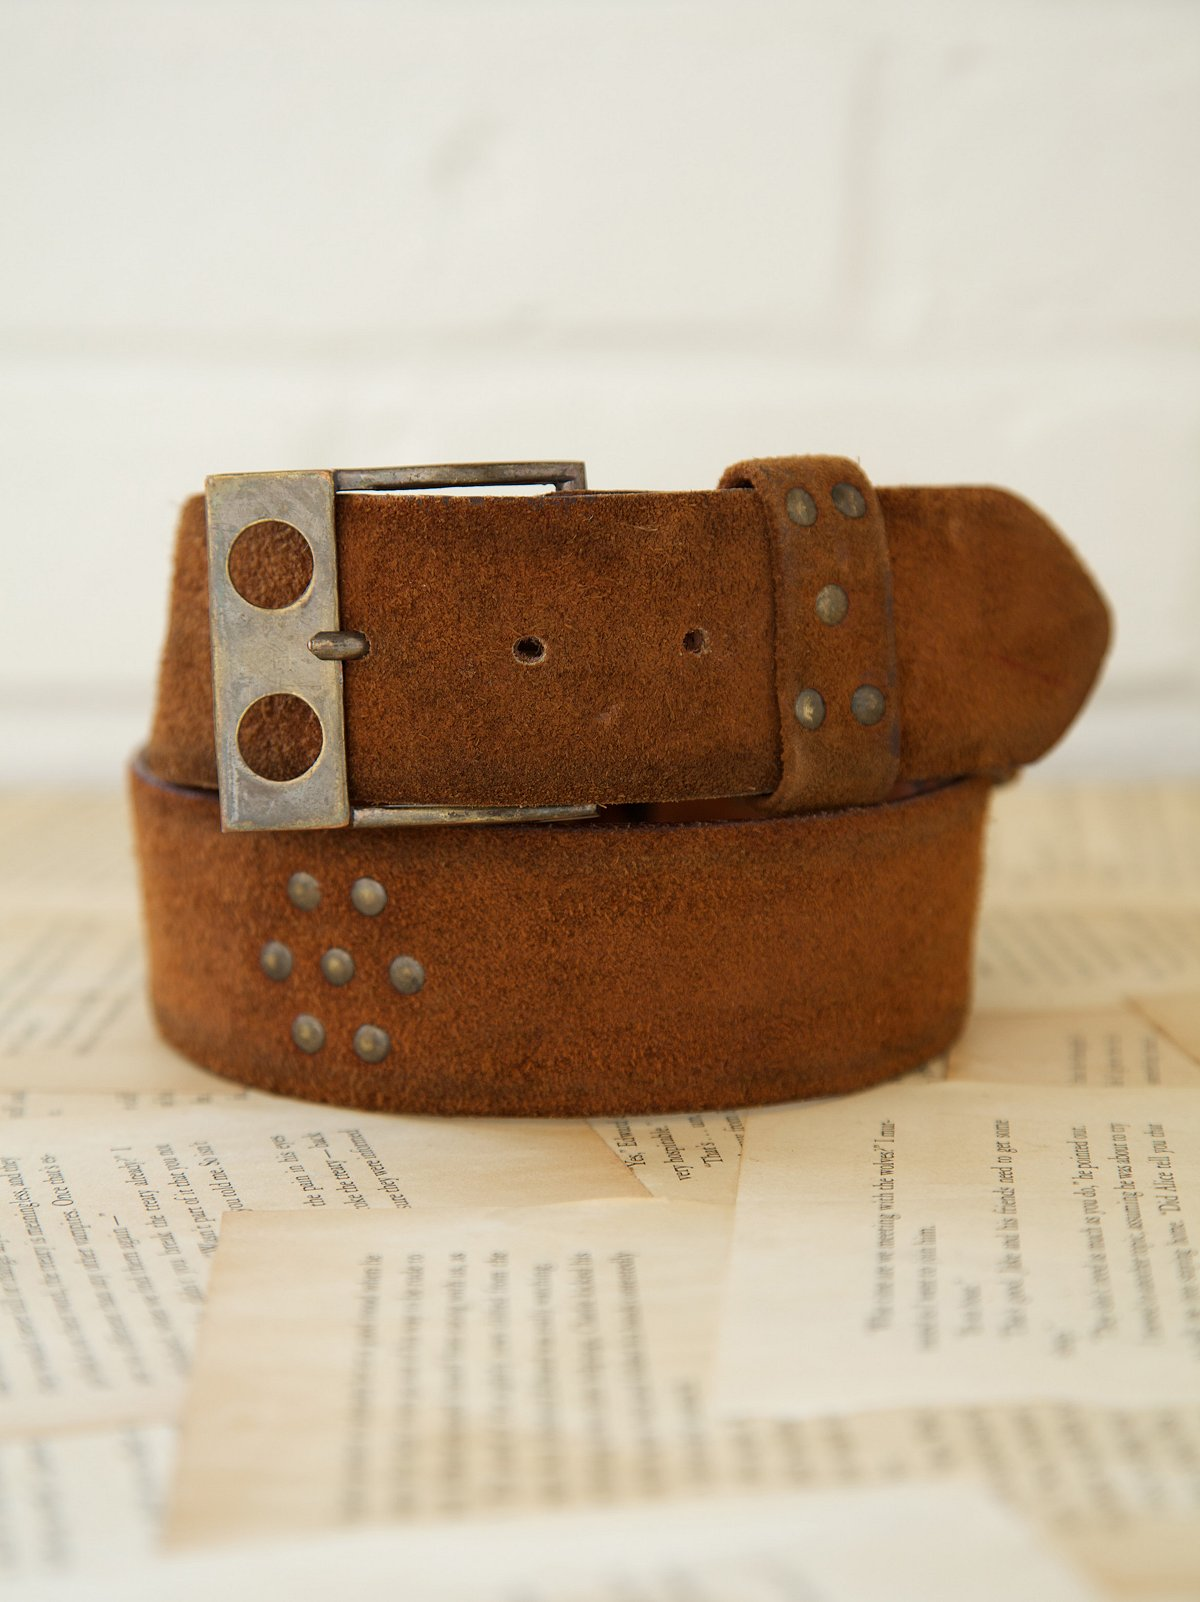 Vintage 1970s Knockout Belt